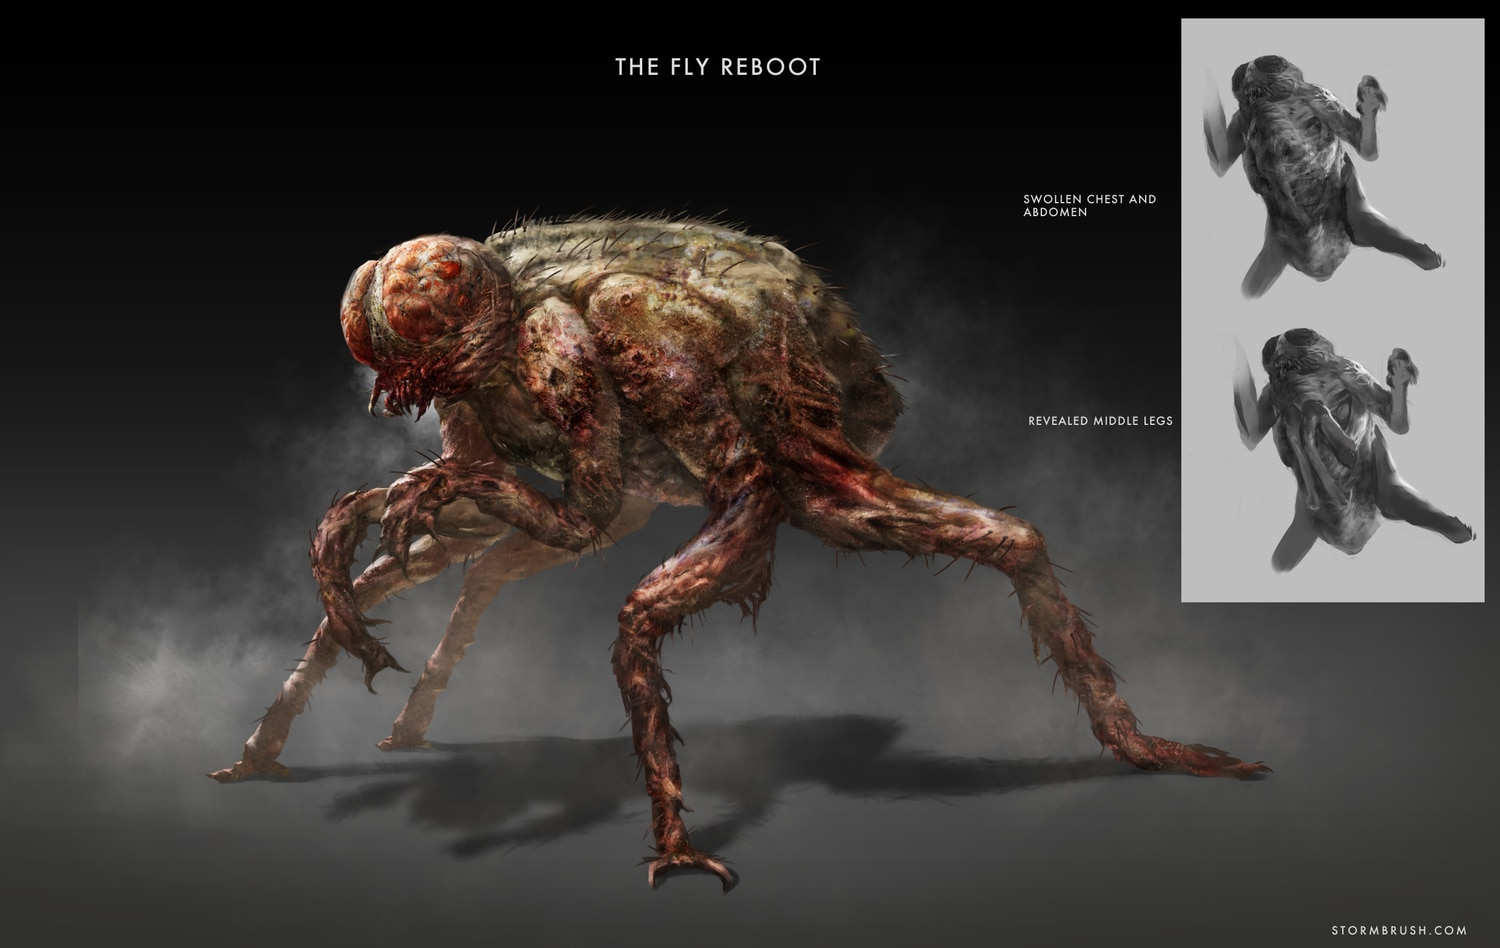 Thefly body stormbrush - 3D Artist Creates Bold New Brundlefly Fan Design For The Fly